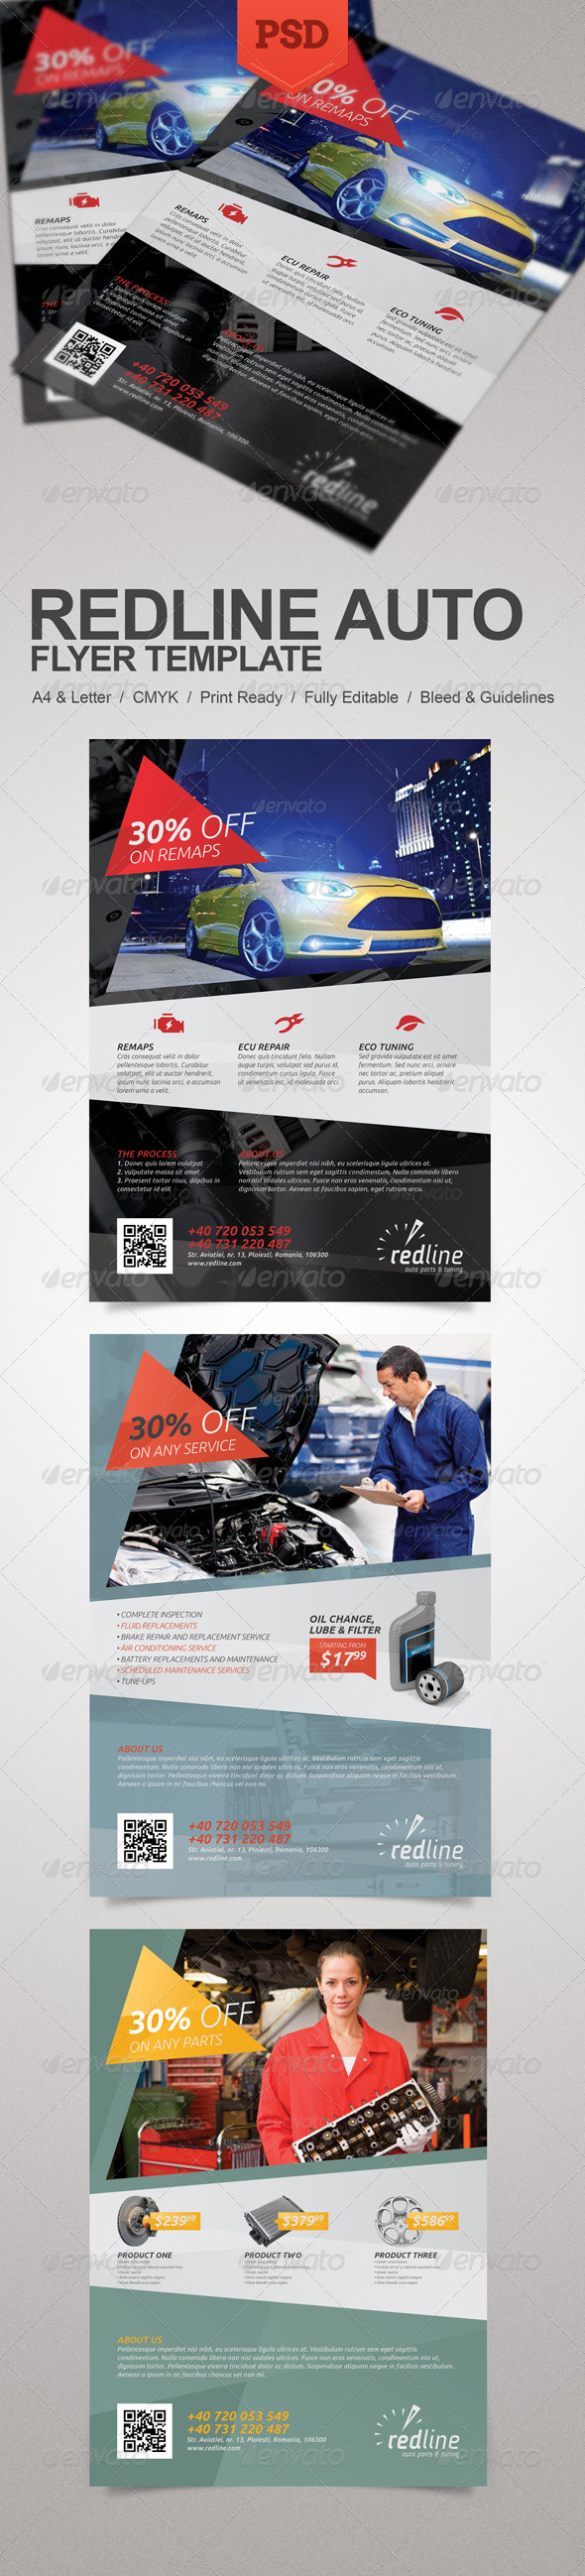 GraphicRiver Redline Auto Flyer 5712728